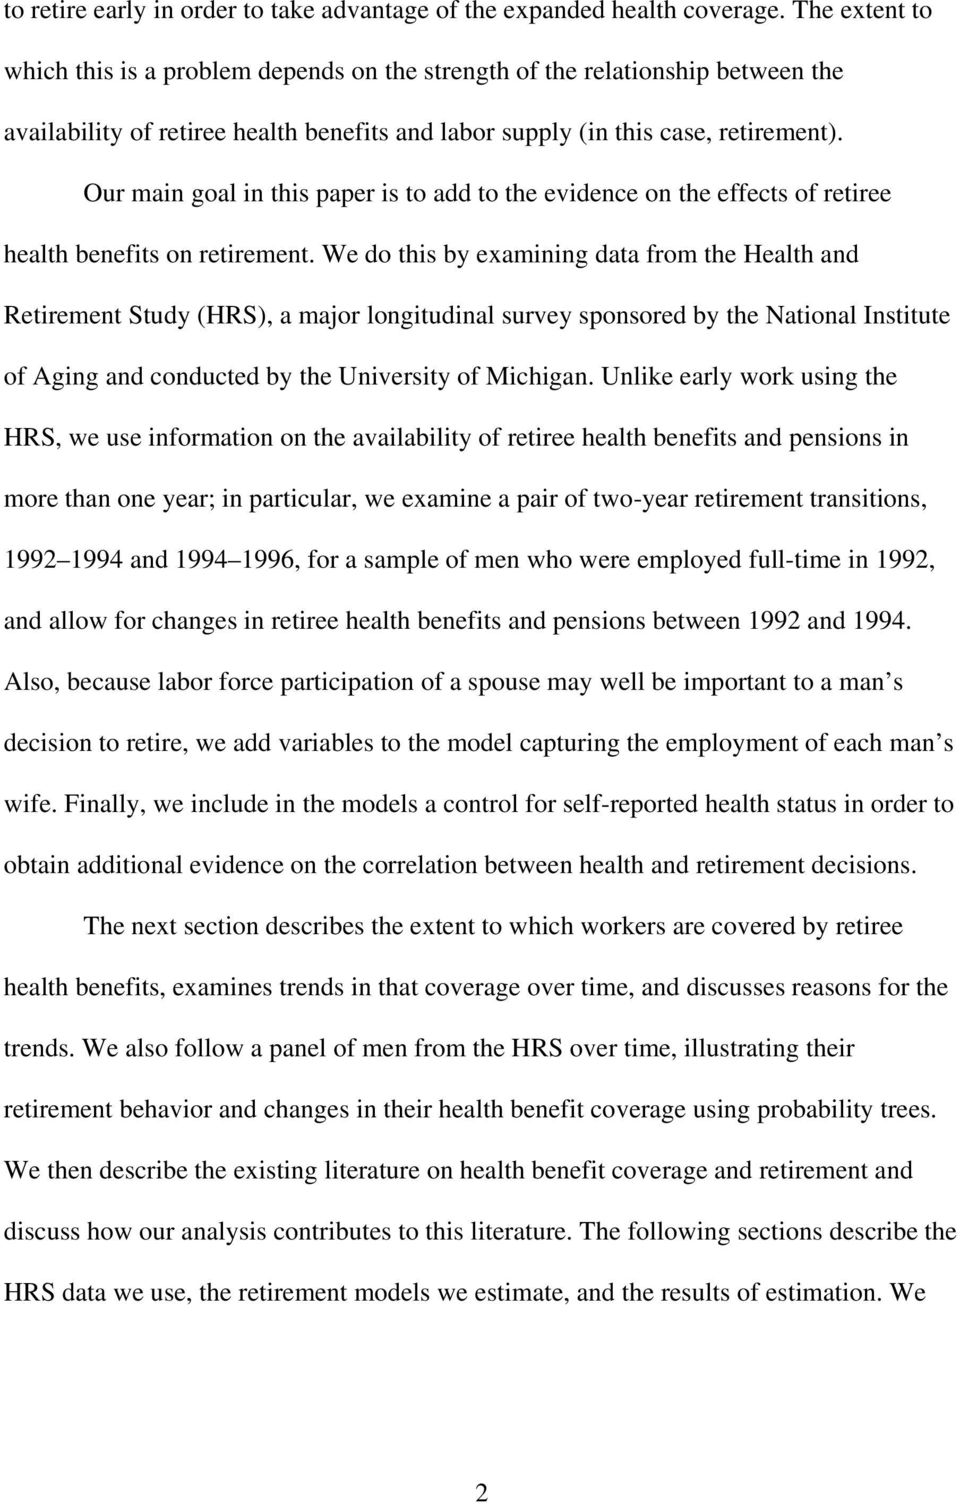 Our main goal in this paper is to add to the evidence on the effects of retiree health benefits on retirement.